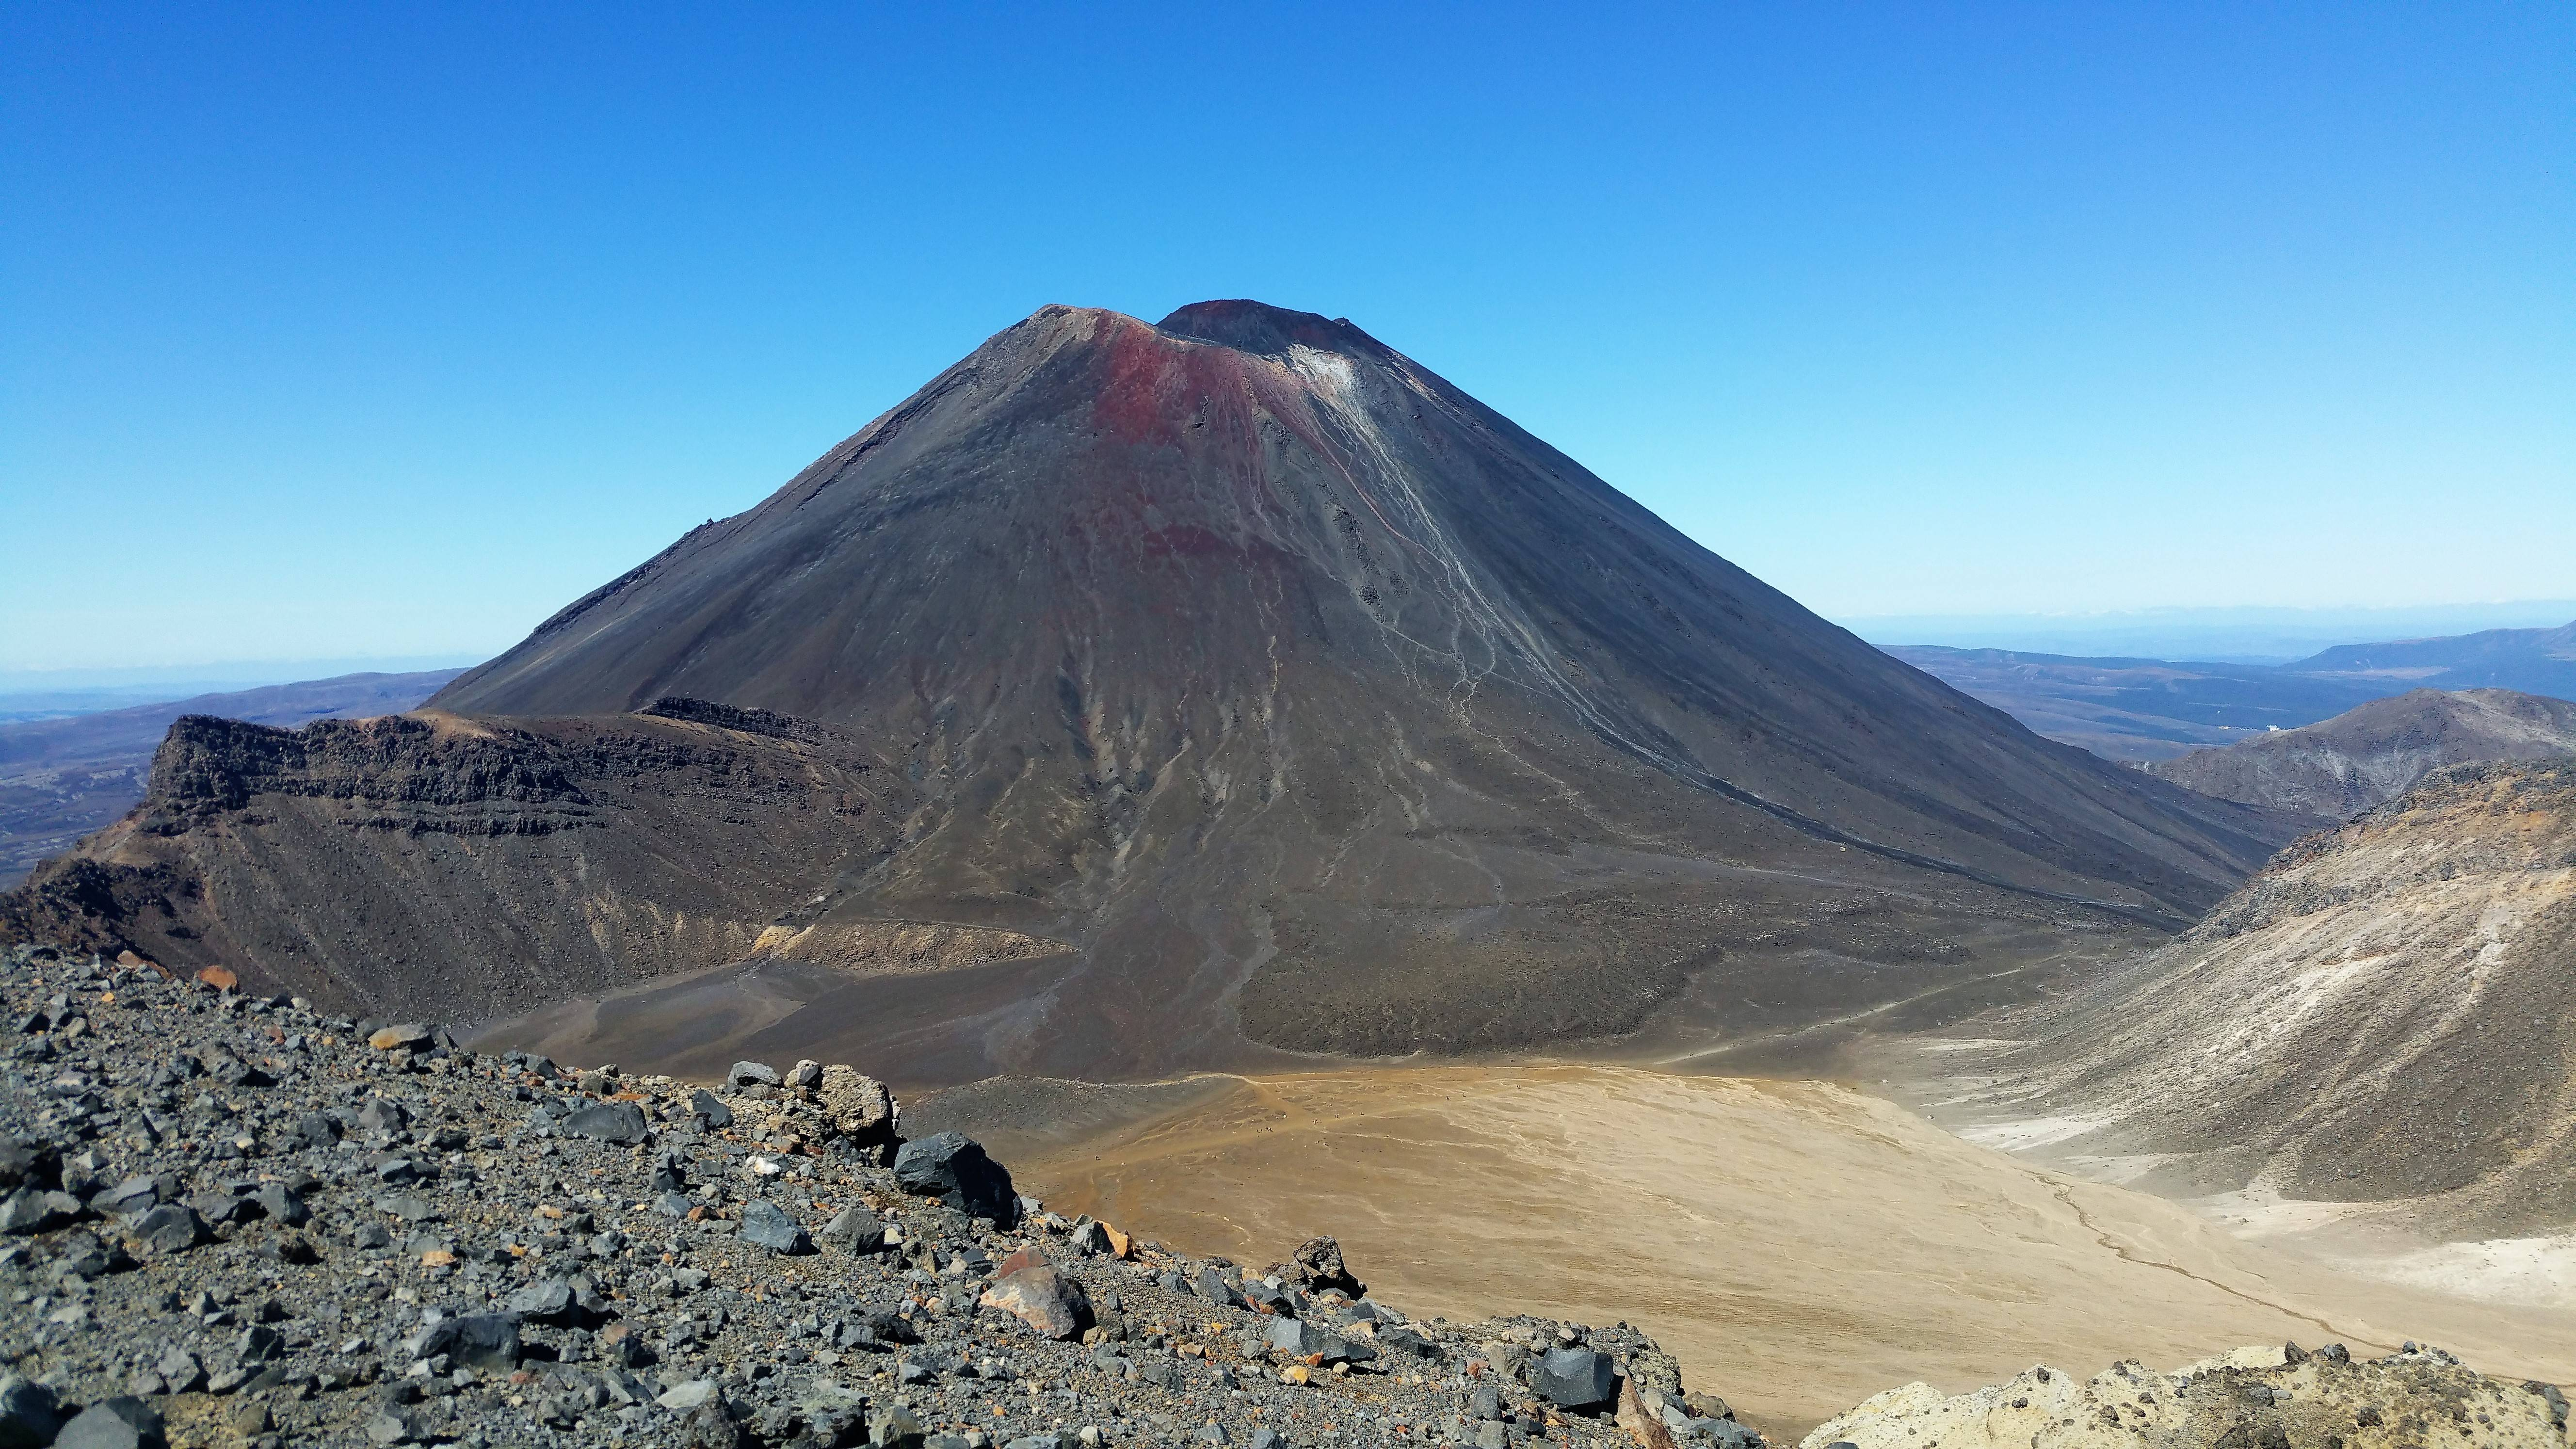 Photo 1: Tongariro Alpine Crossing